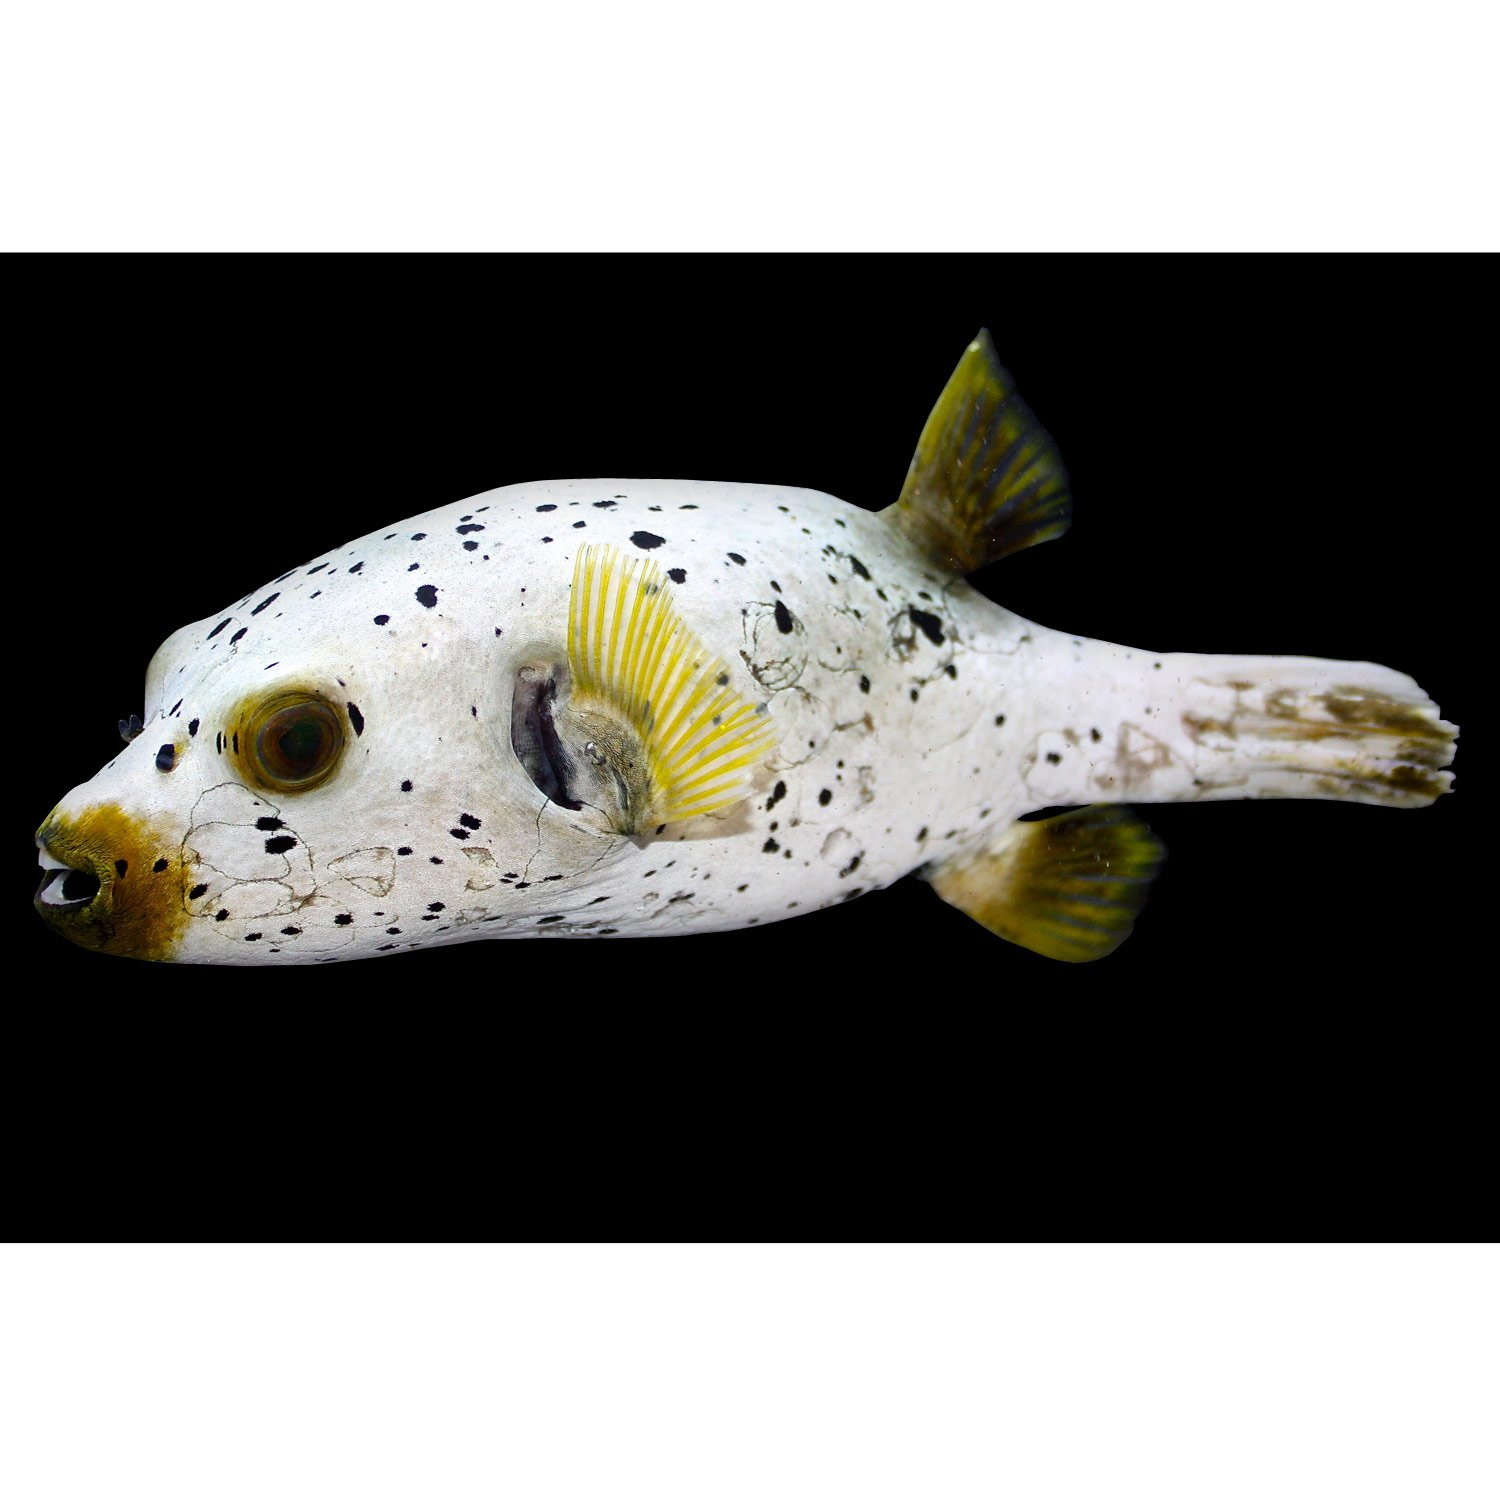 Dog face puffer petco for Petco live fish